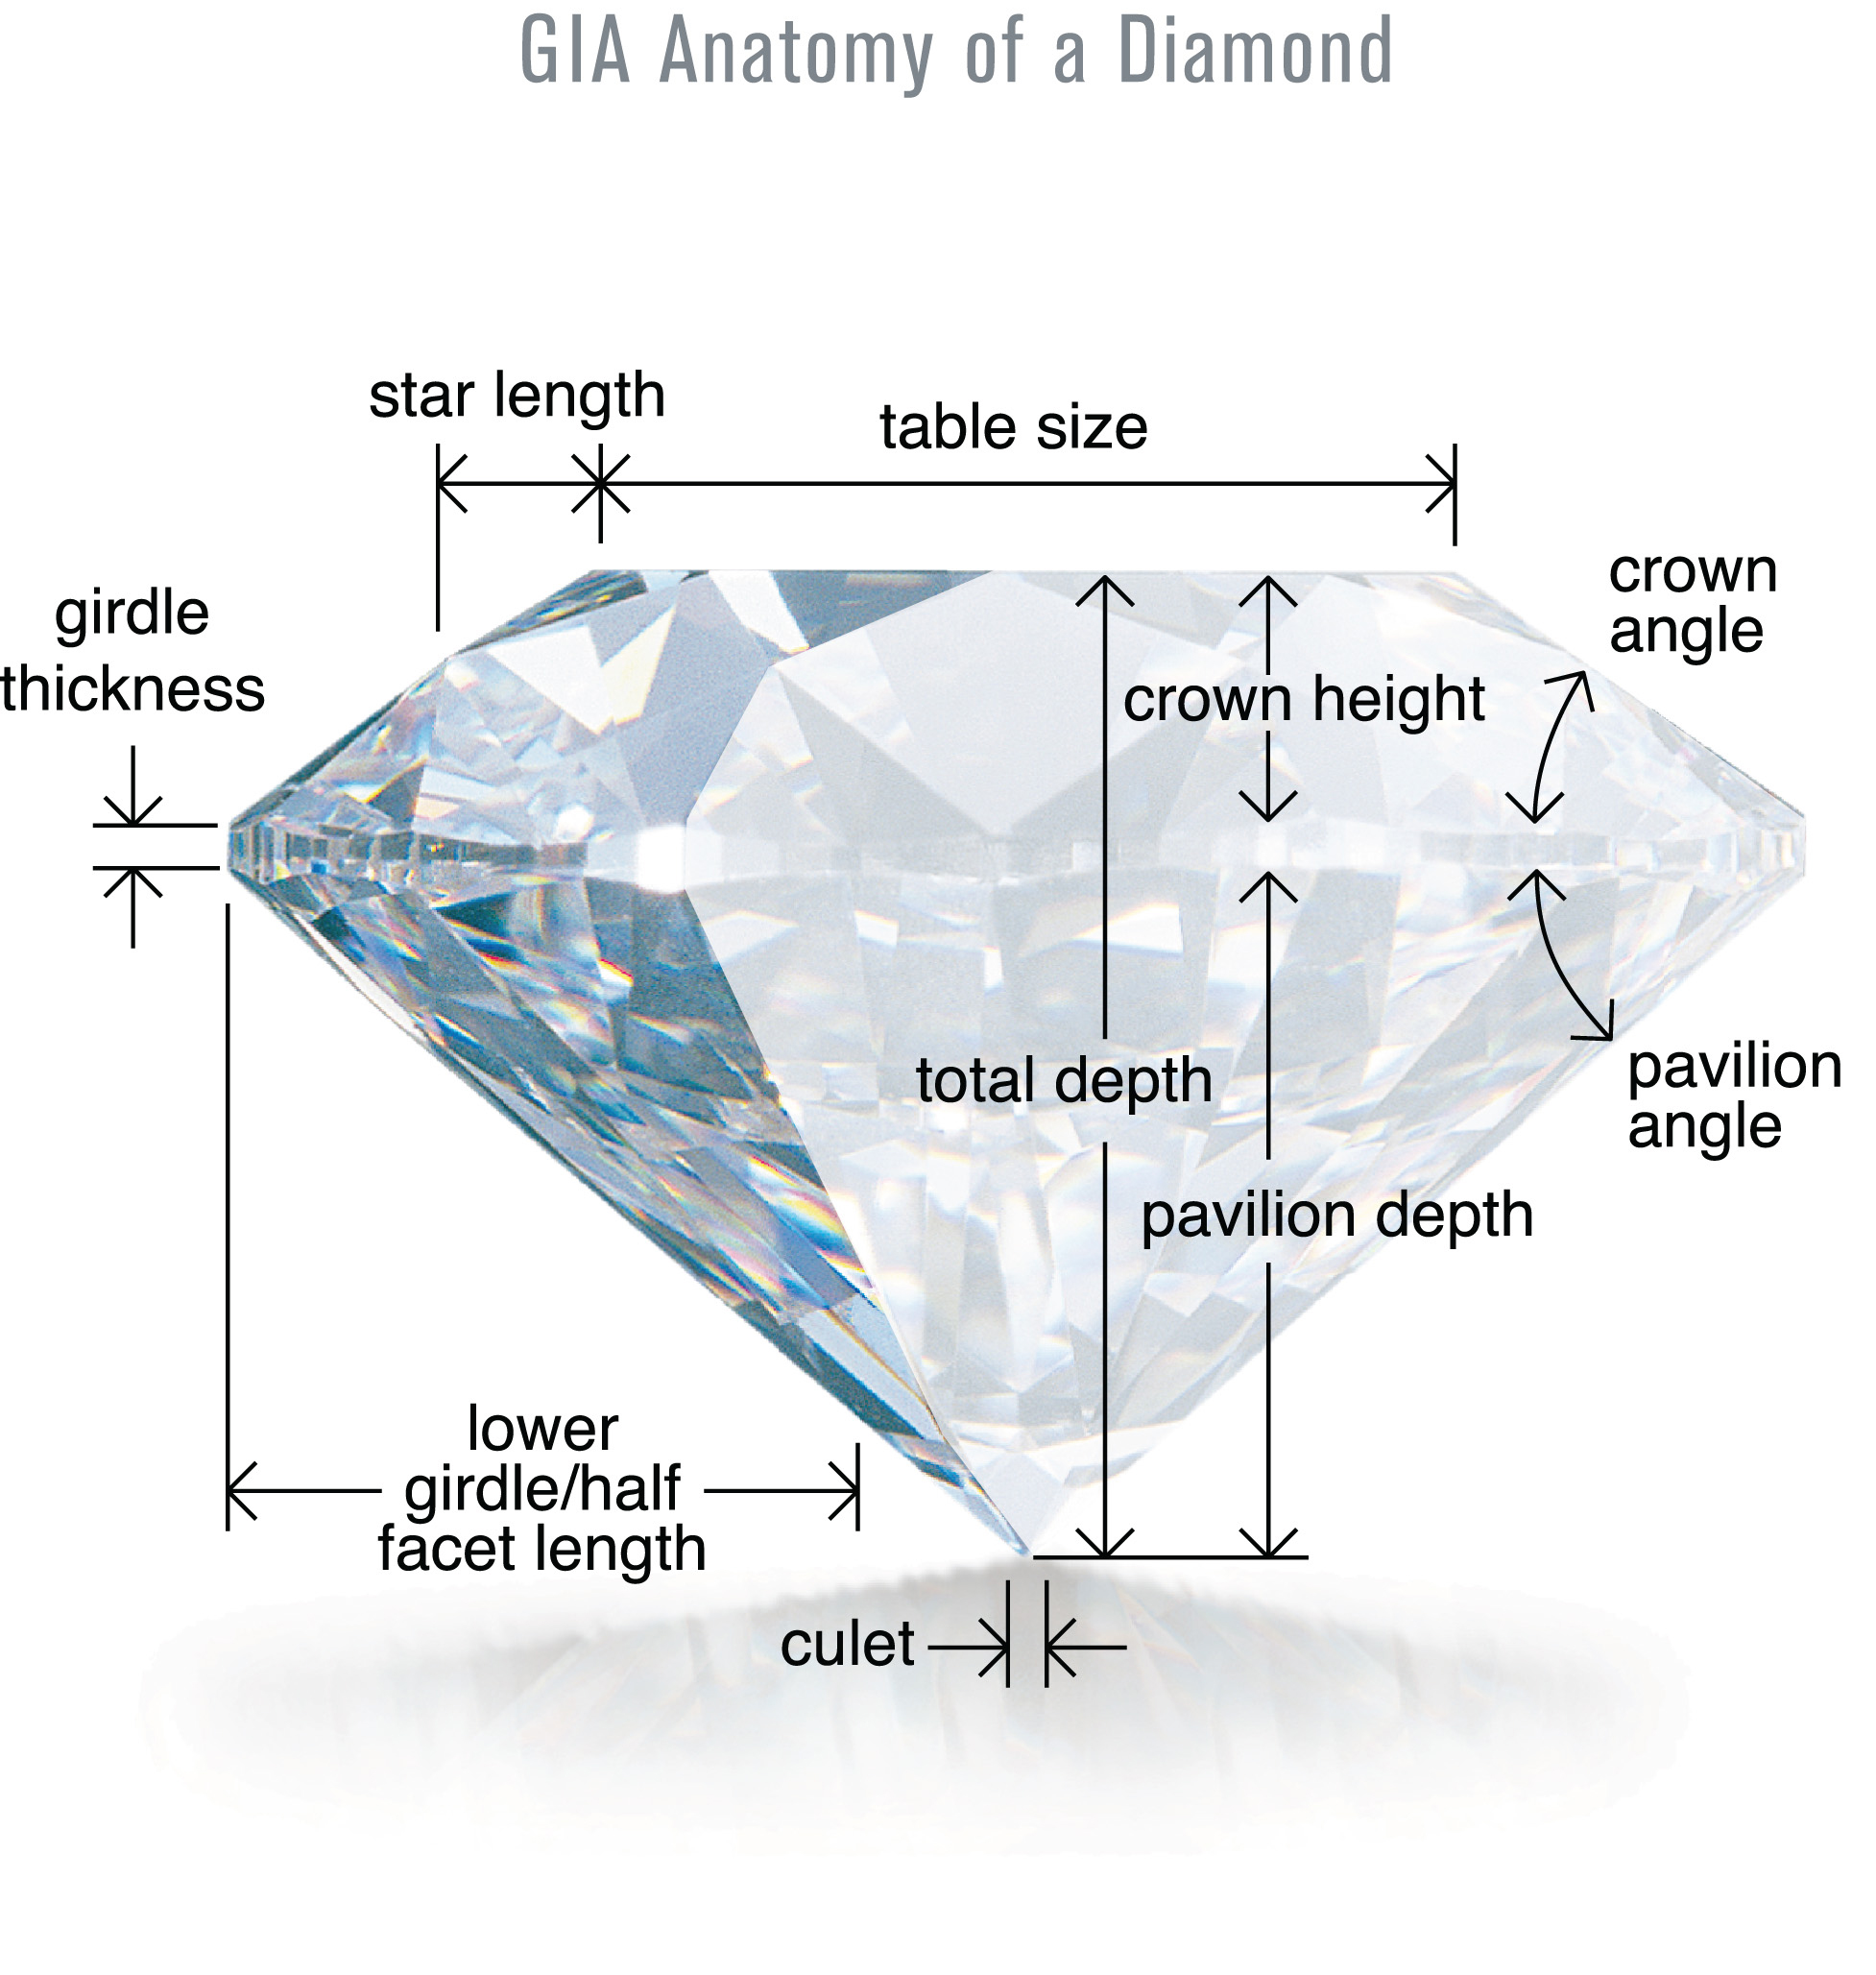 Diamond Cut/Anatomy